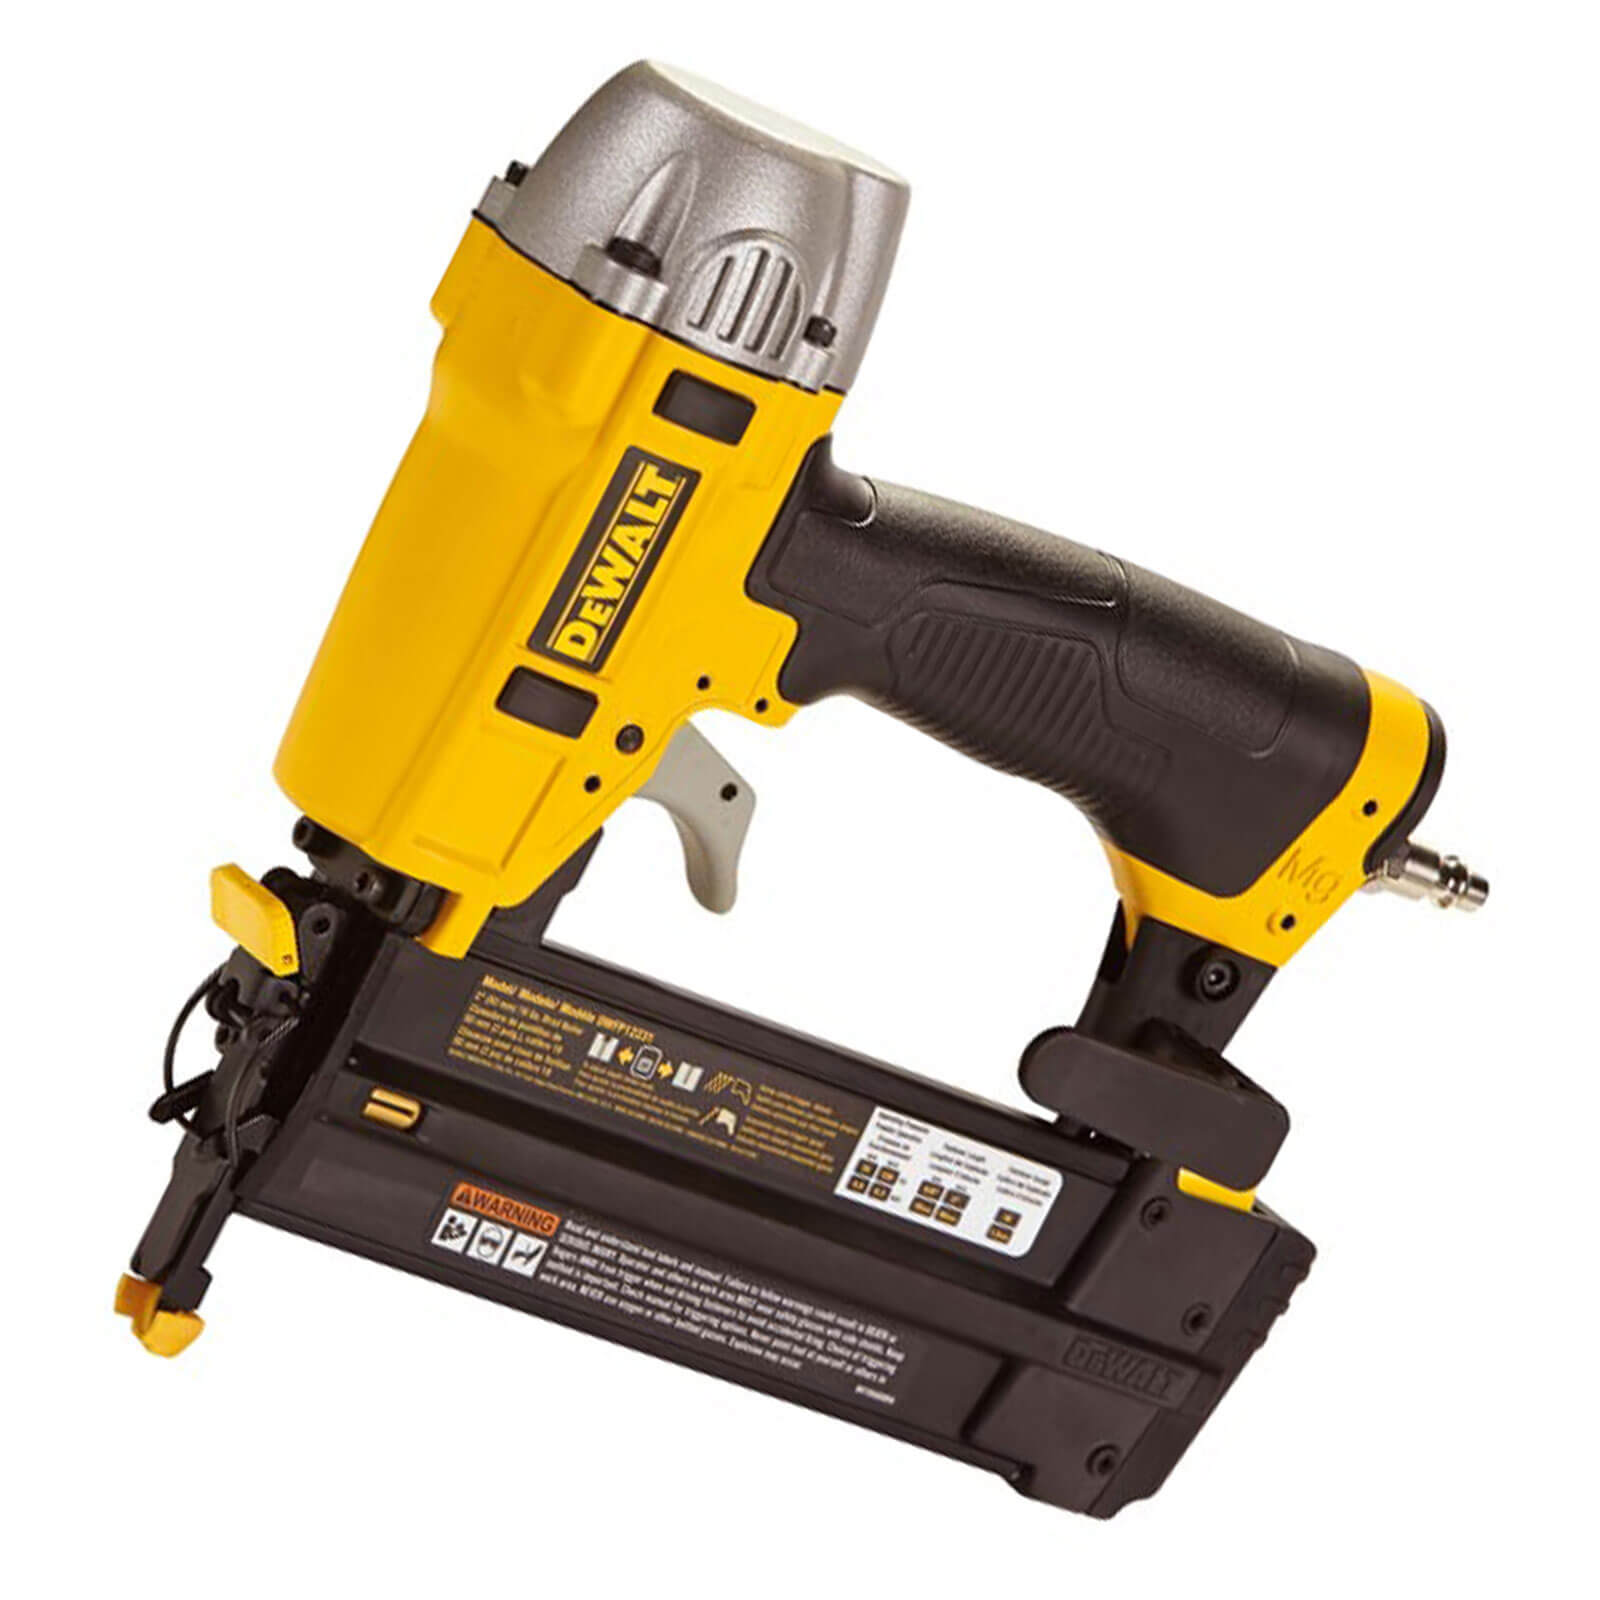 Image of DeWalt DPN1850 18 Gauge Brad Air Nail Gun